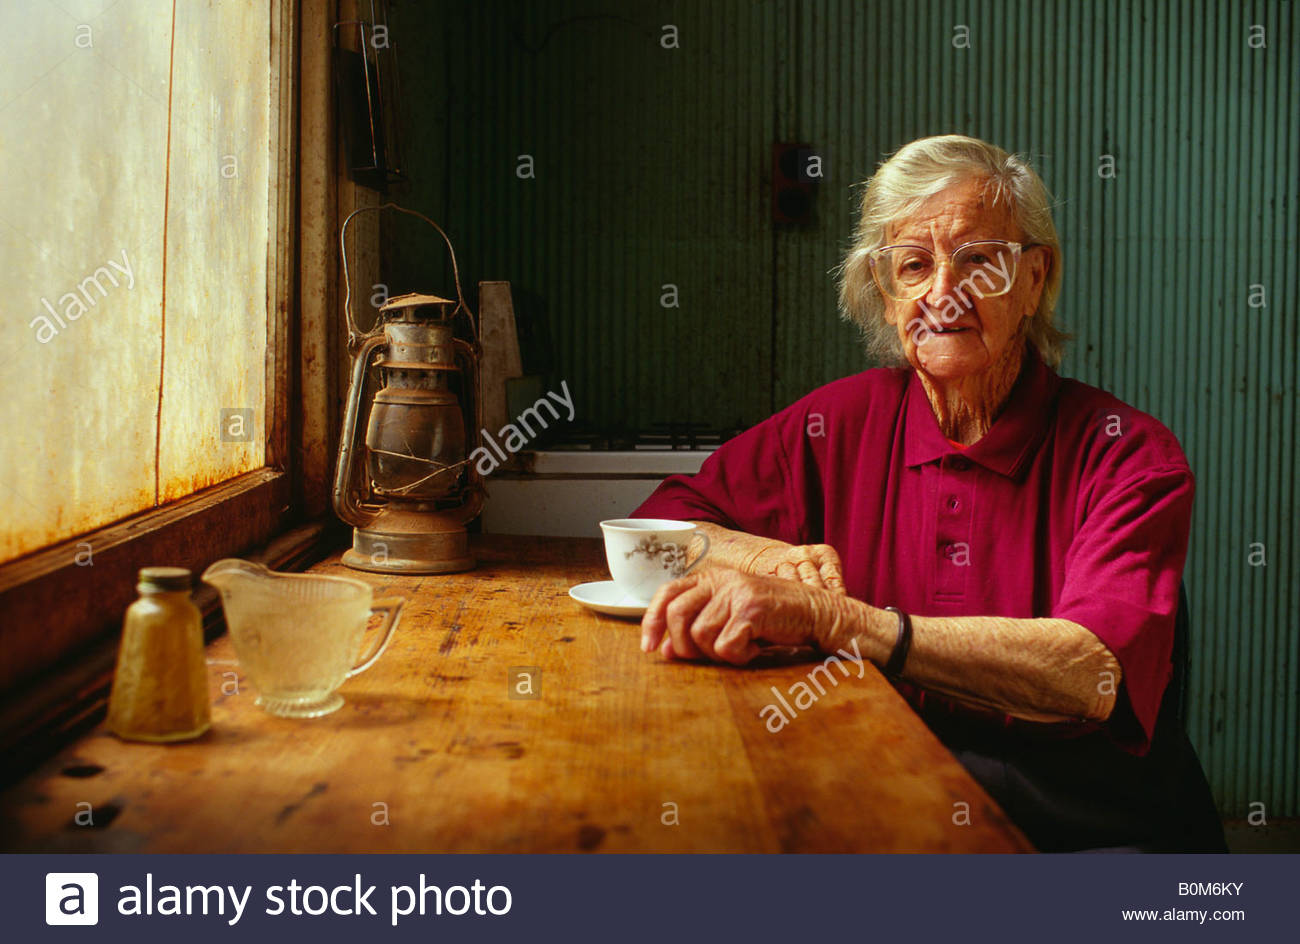 Elderly woman having tea, Leonoro, Western Australia, Australia - Stock Image